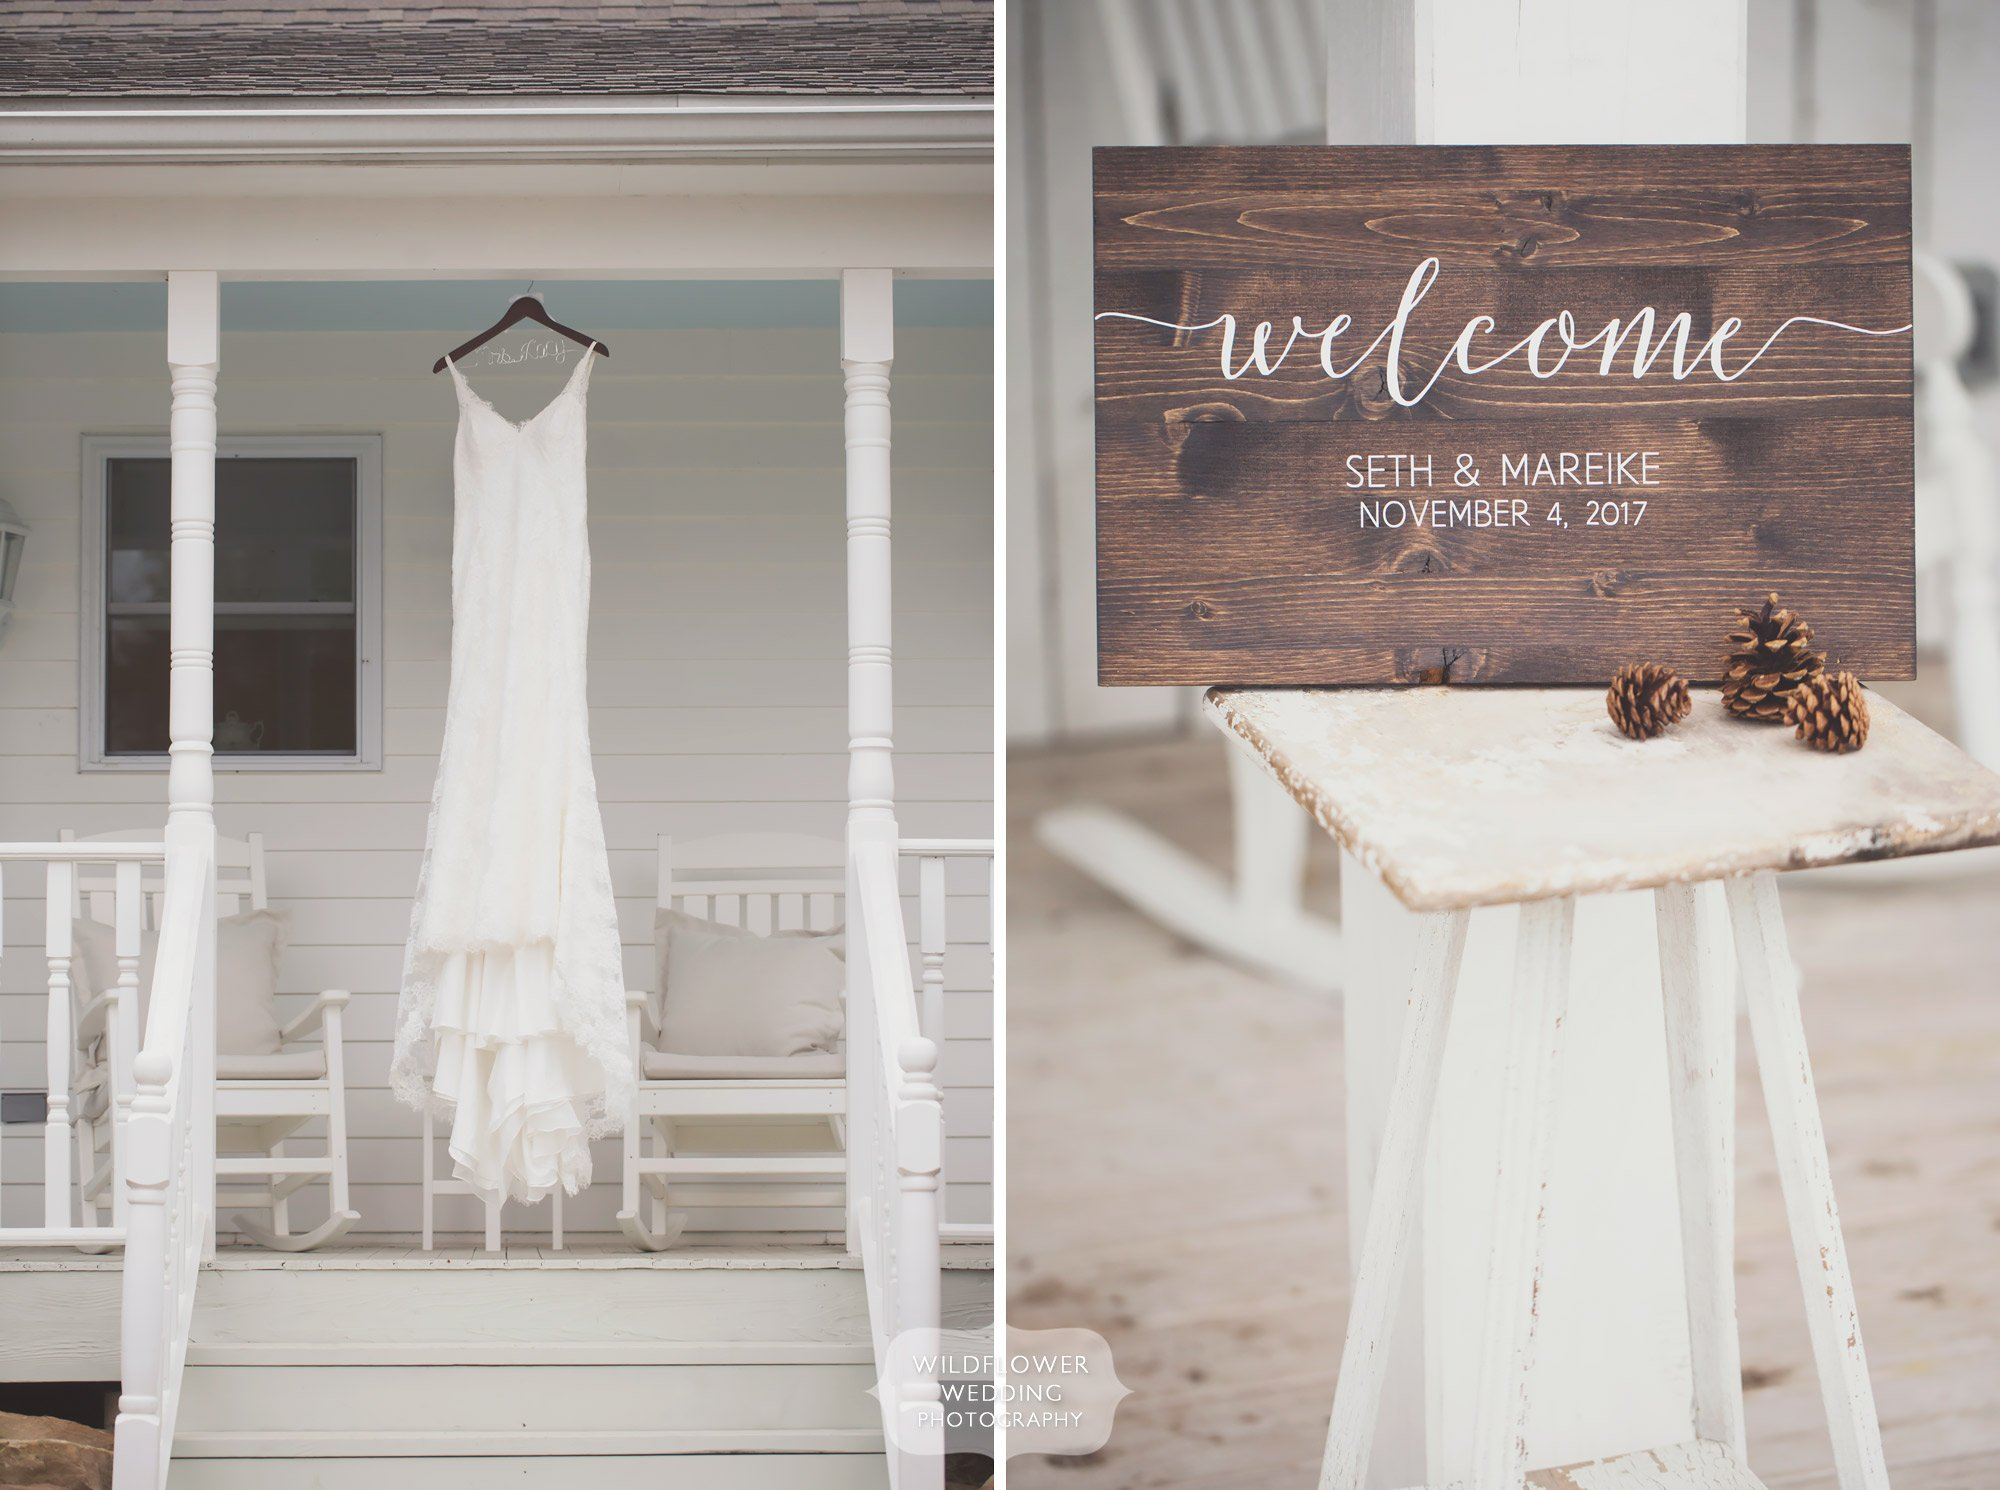 Ethereal photography of the wedding dress hanging at wooden welcome sign at this Blue Bell Farm wedding venue in mid-Missouri.